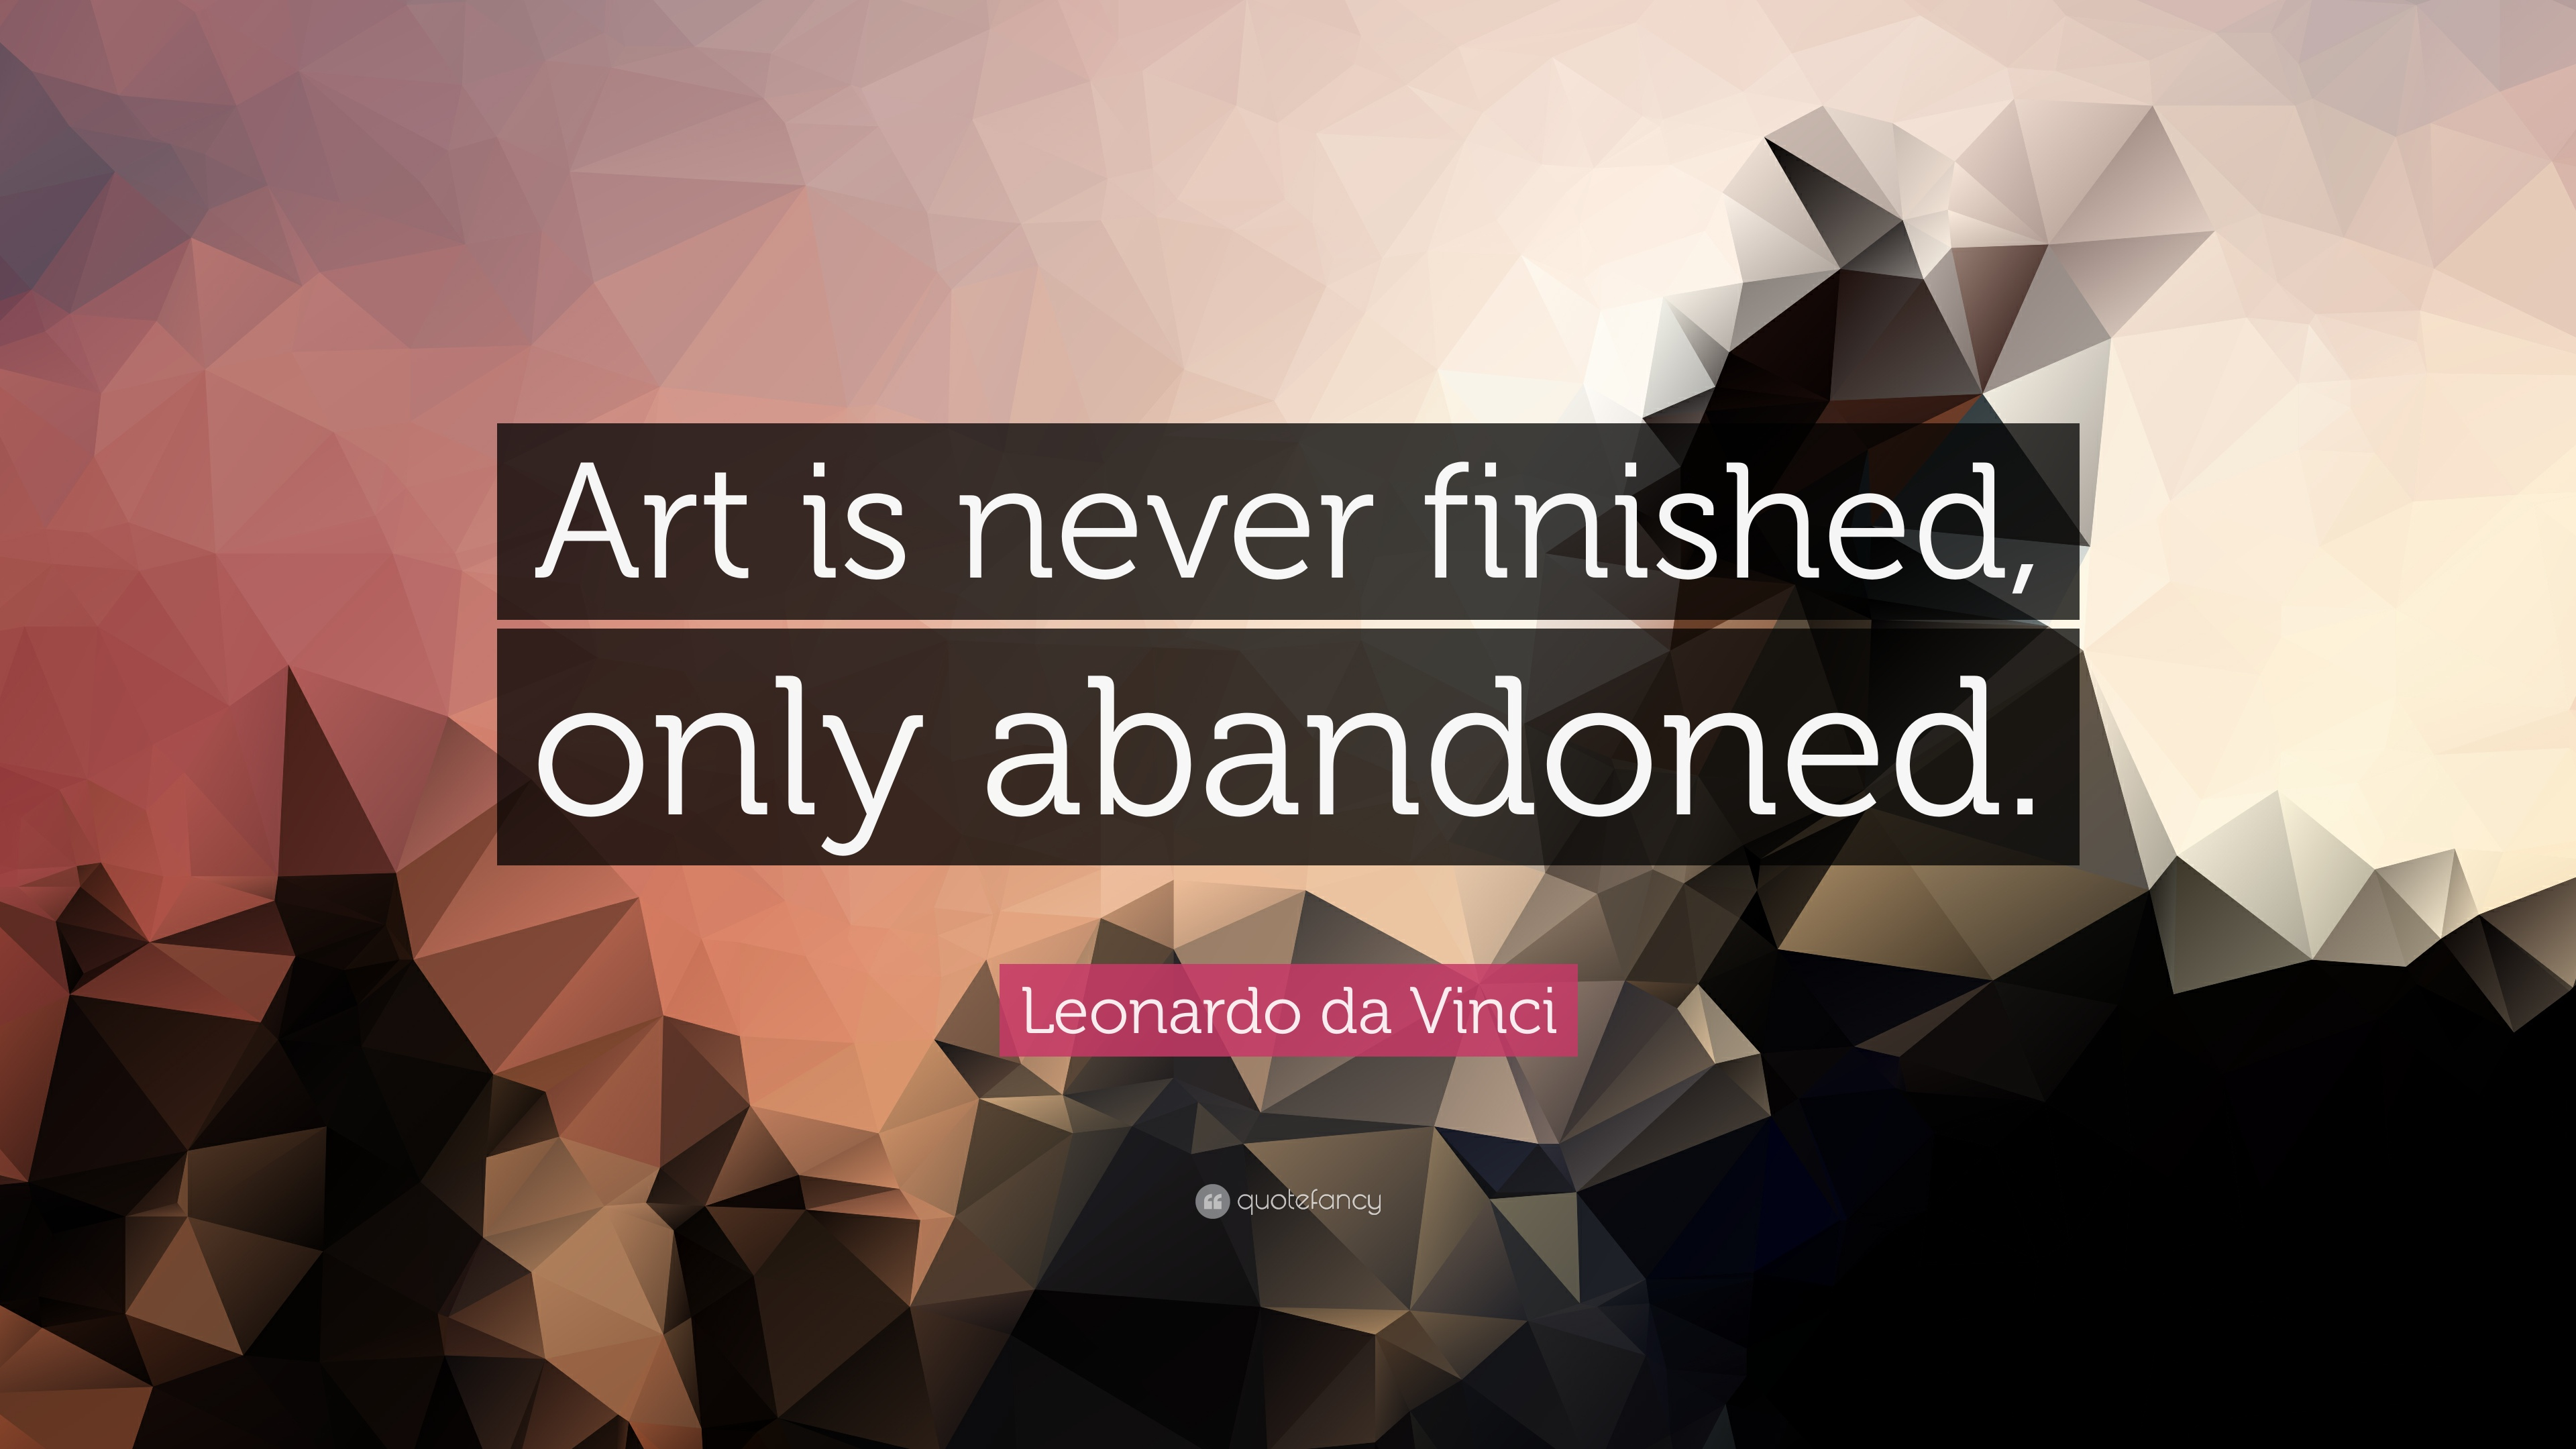 a-art-10274-Leonardo-da-Vinci-Quote-Art-is-never-finished-only-abandoned